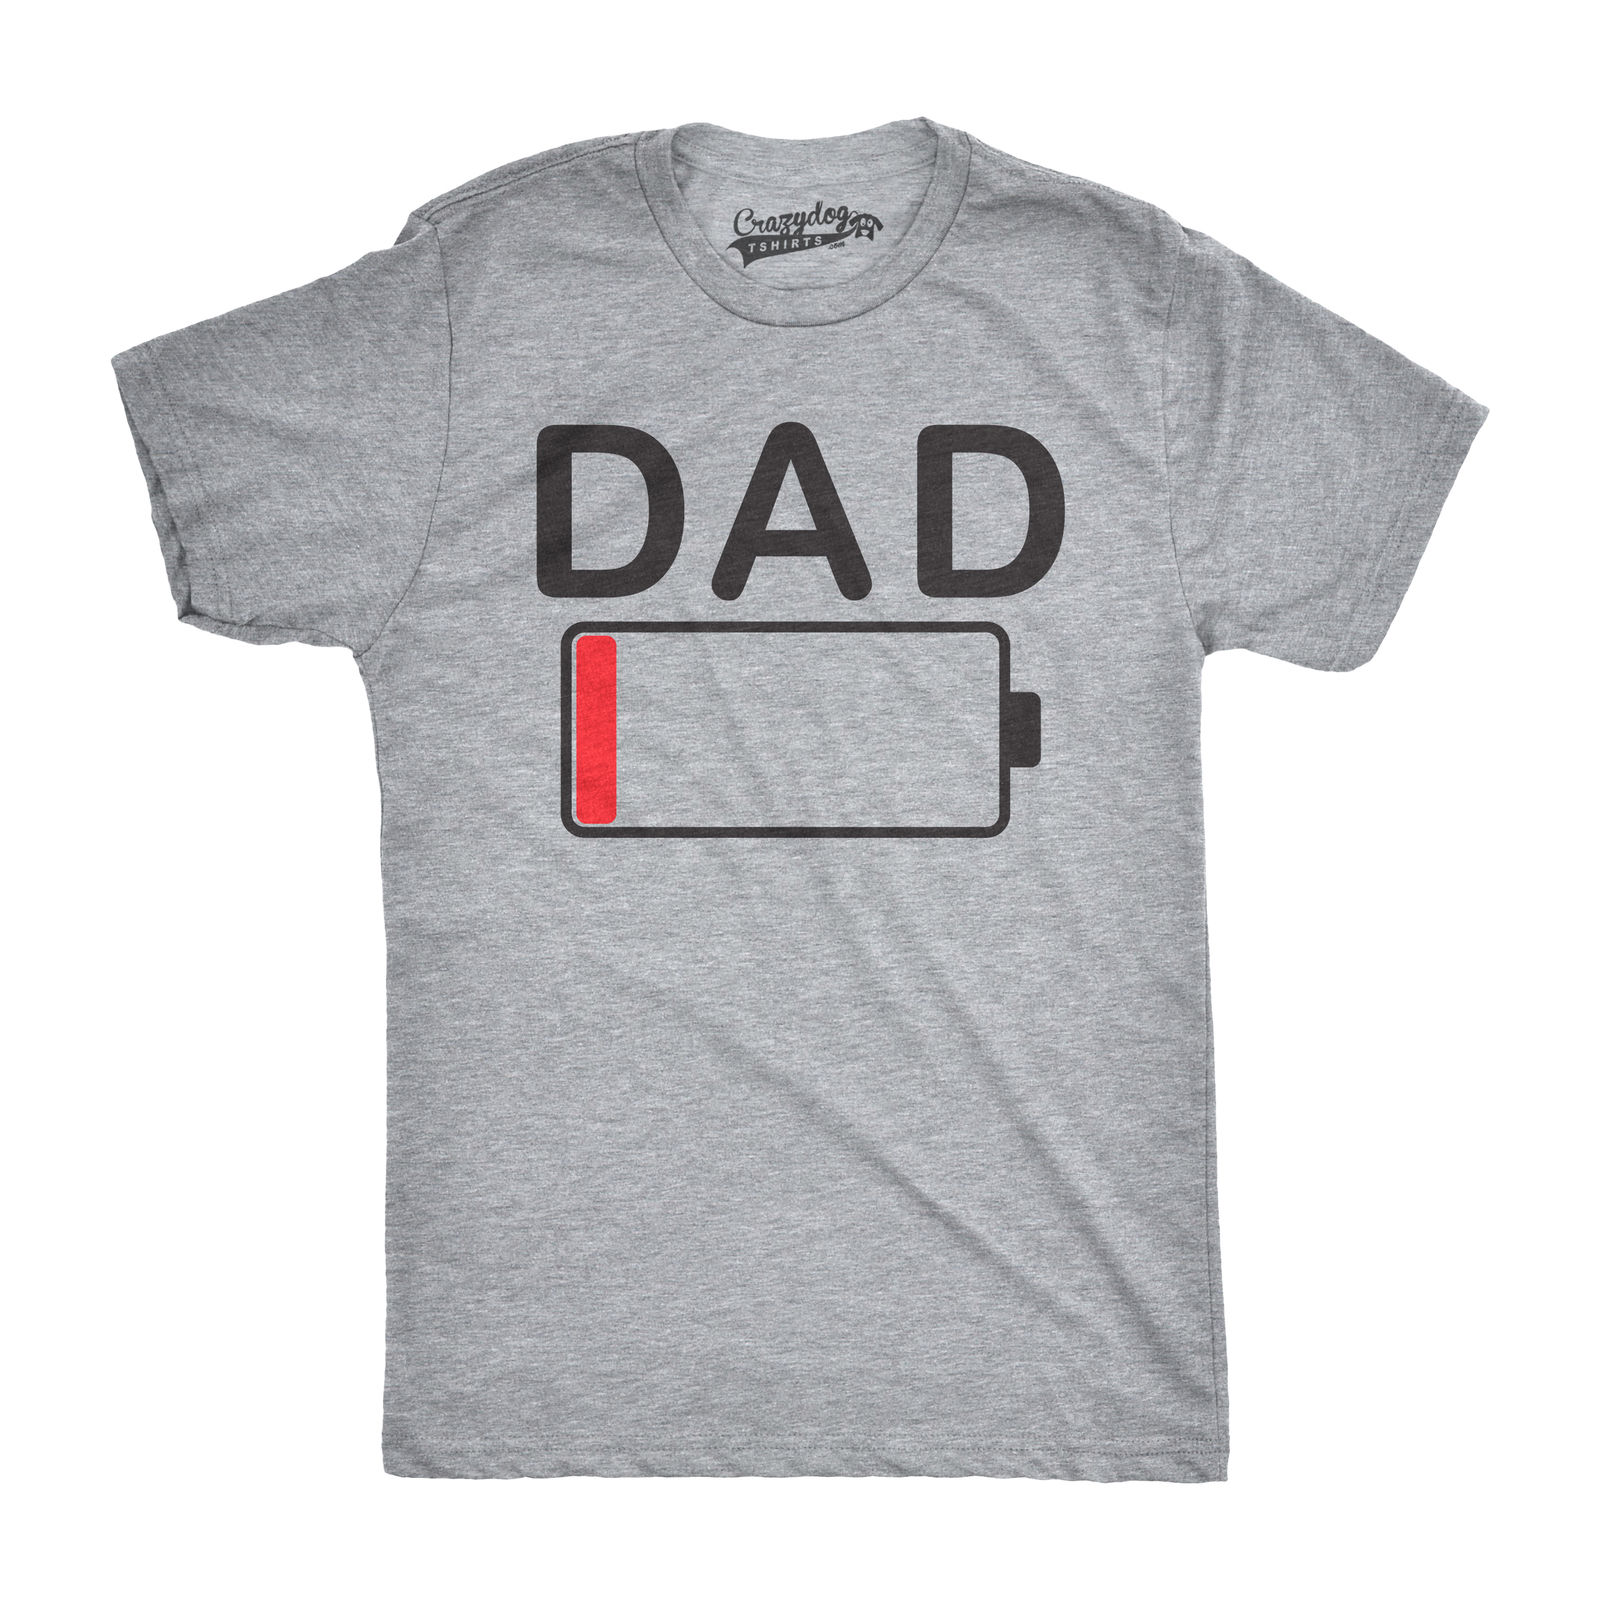 Mens Dad Battery Low Funny Empty Tired Father Parenting Fathers Day T Shirt